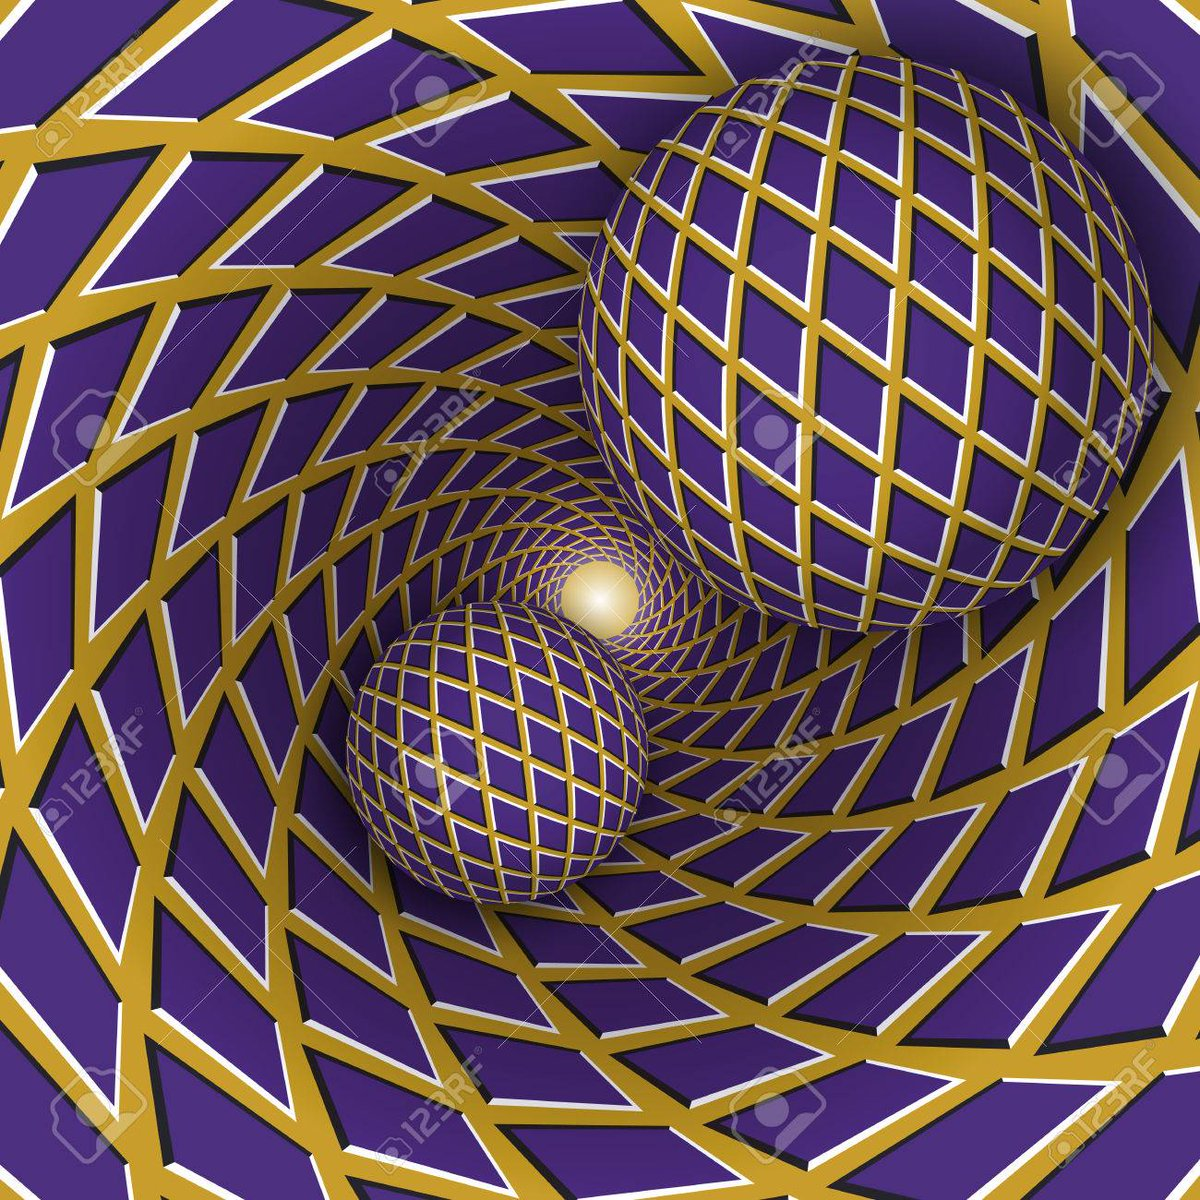 #Vector - #Opticalillusion illustration. Two balls are moving on rotating golden background with purple rhombuses. Abstract background in a surreal style. https://t.co/2FT7vUDUNw https://t.co/ljCvNsMGRd